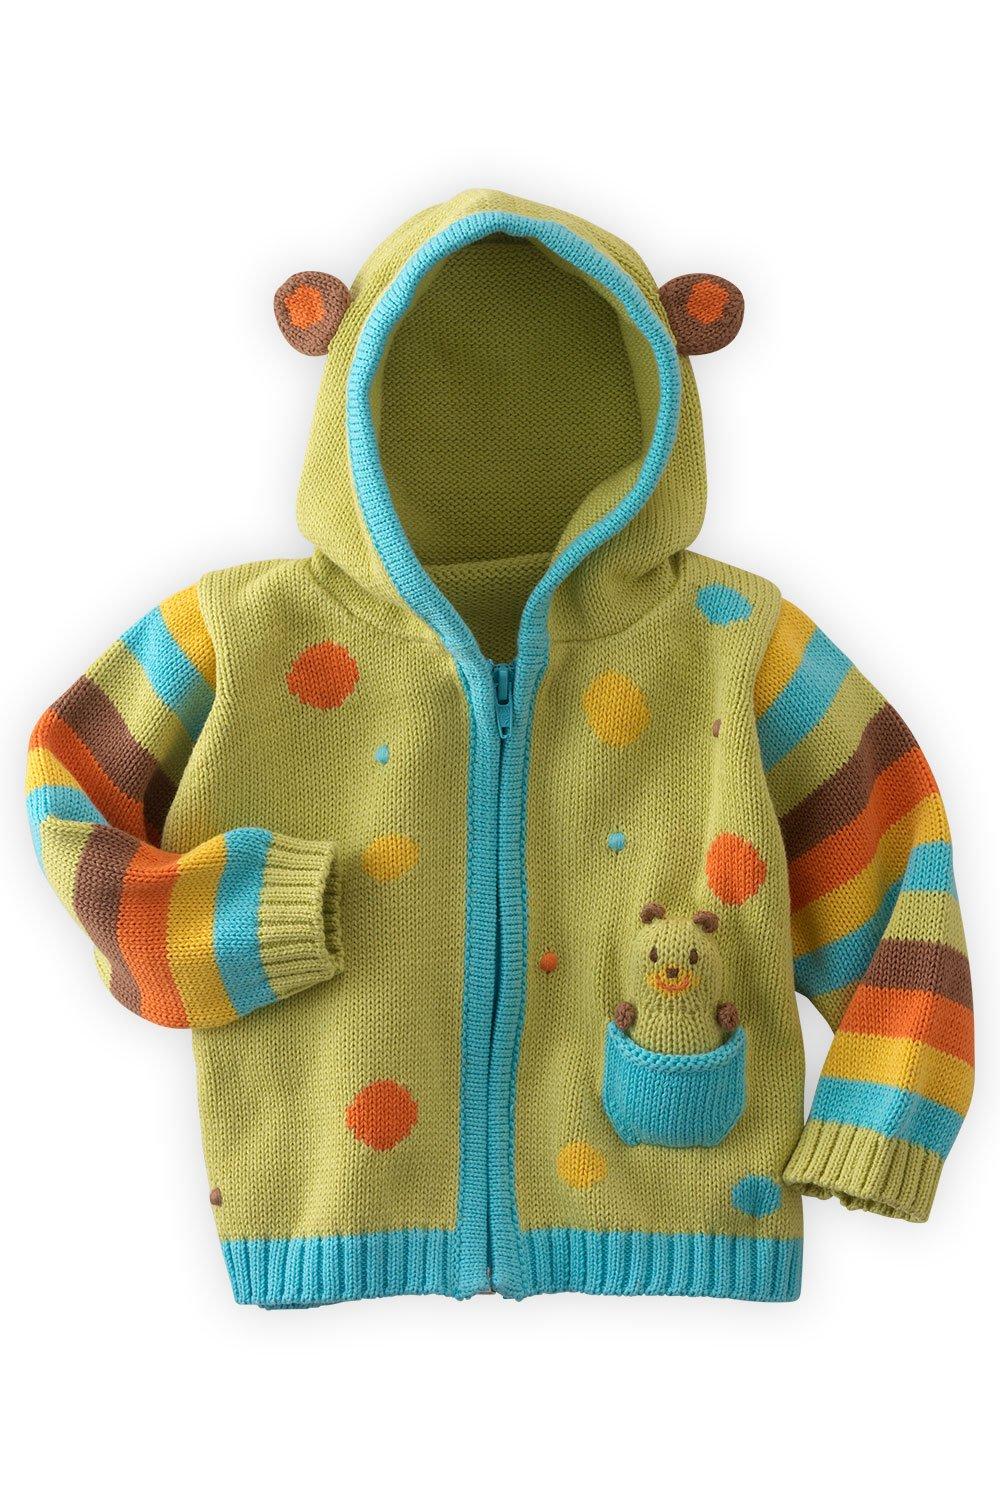 Joobles Organic Baby Cardigan Sweater - Huggy The Bear (12-18 Mos) Green by Joobles